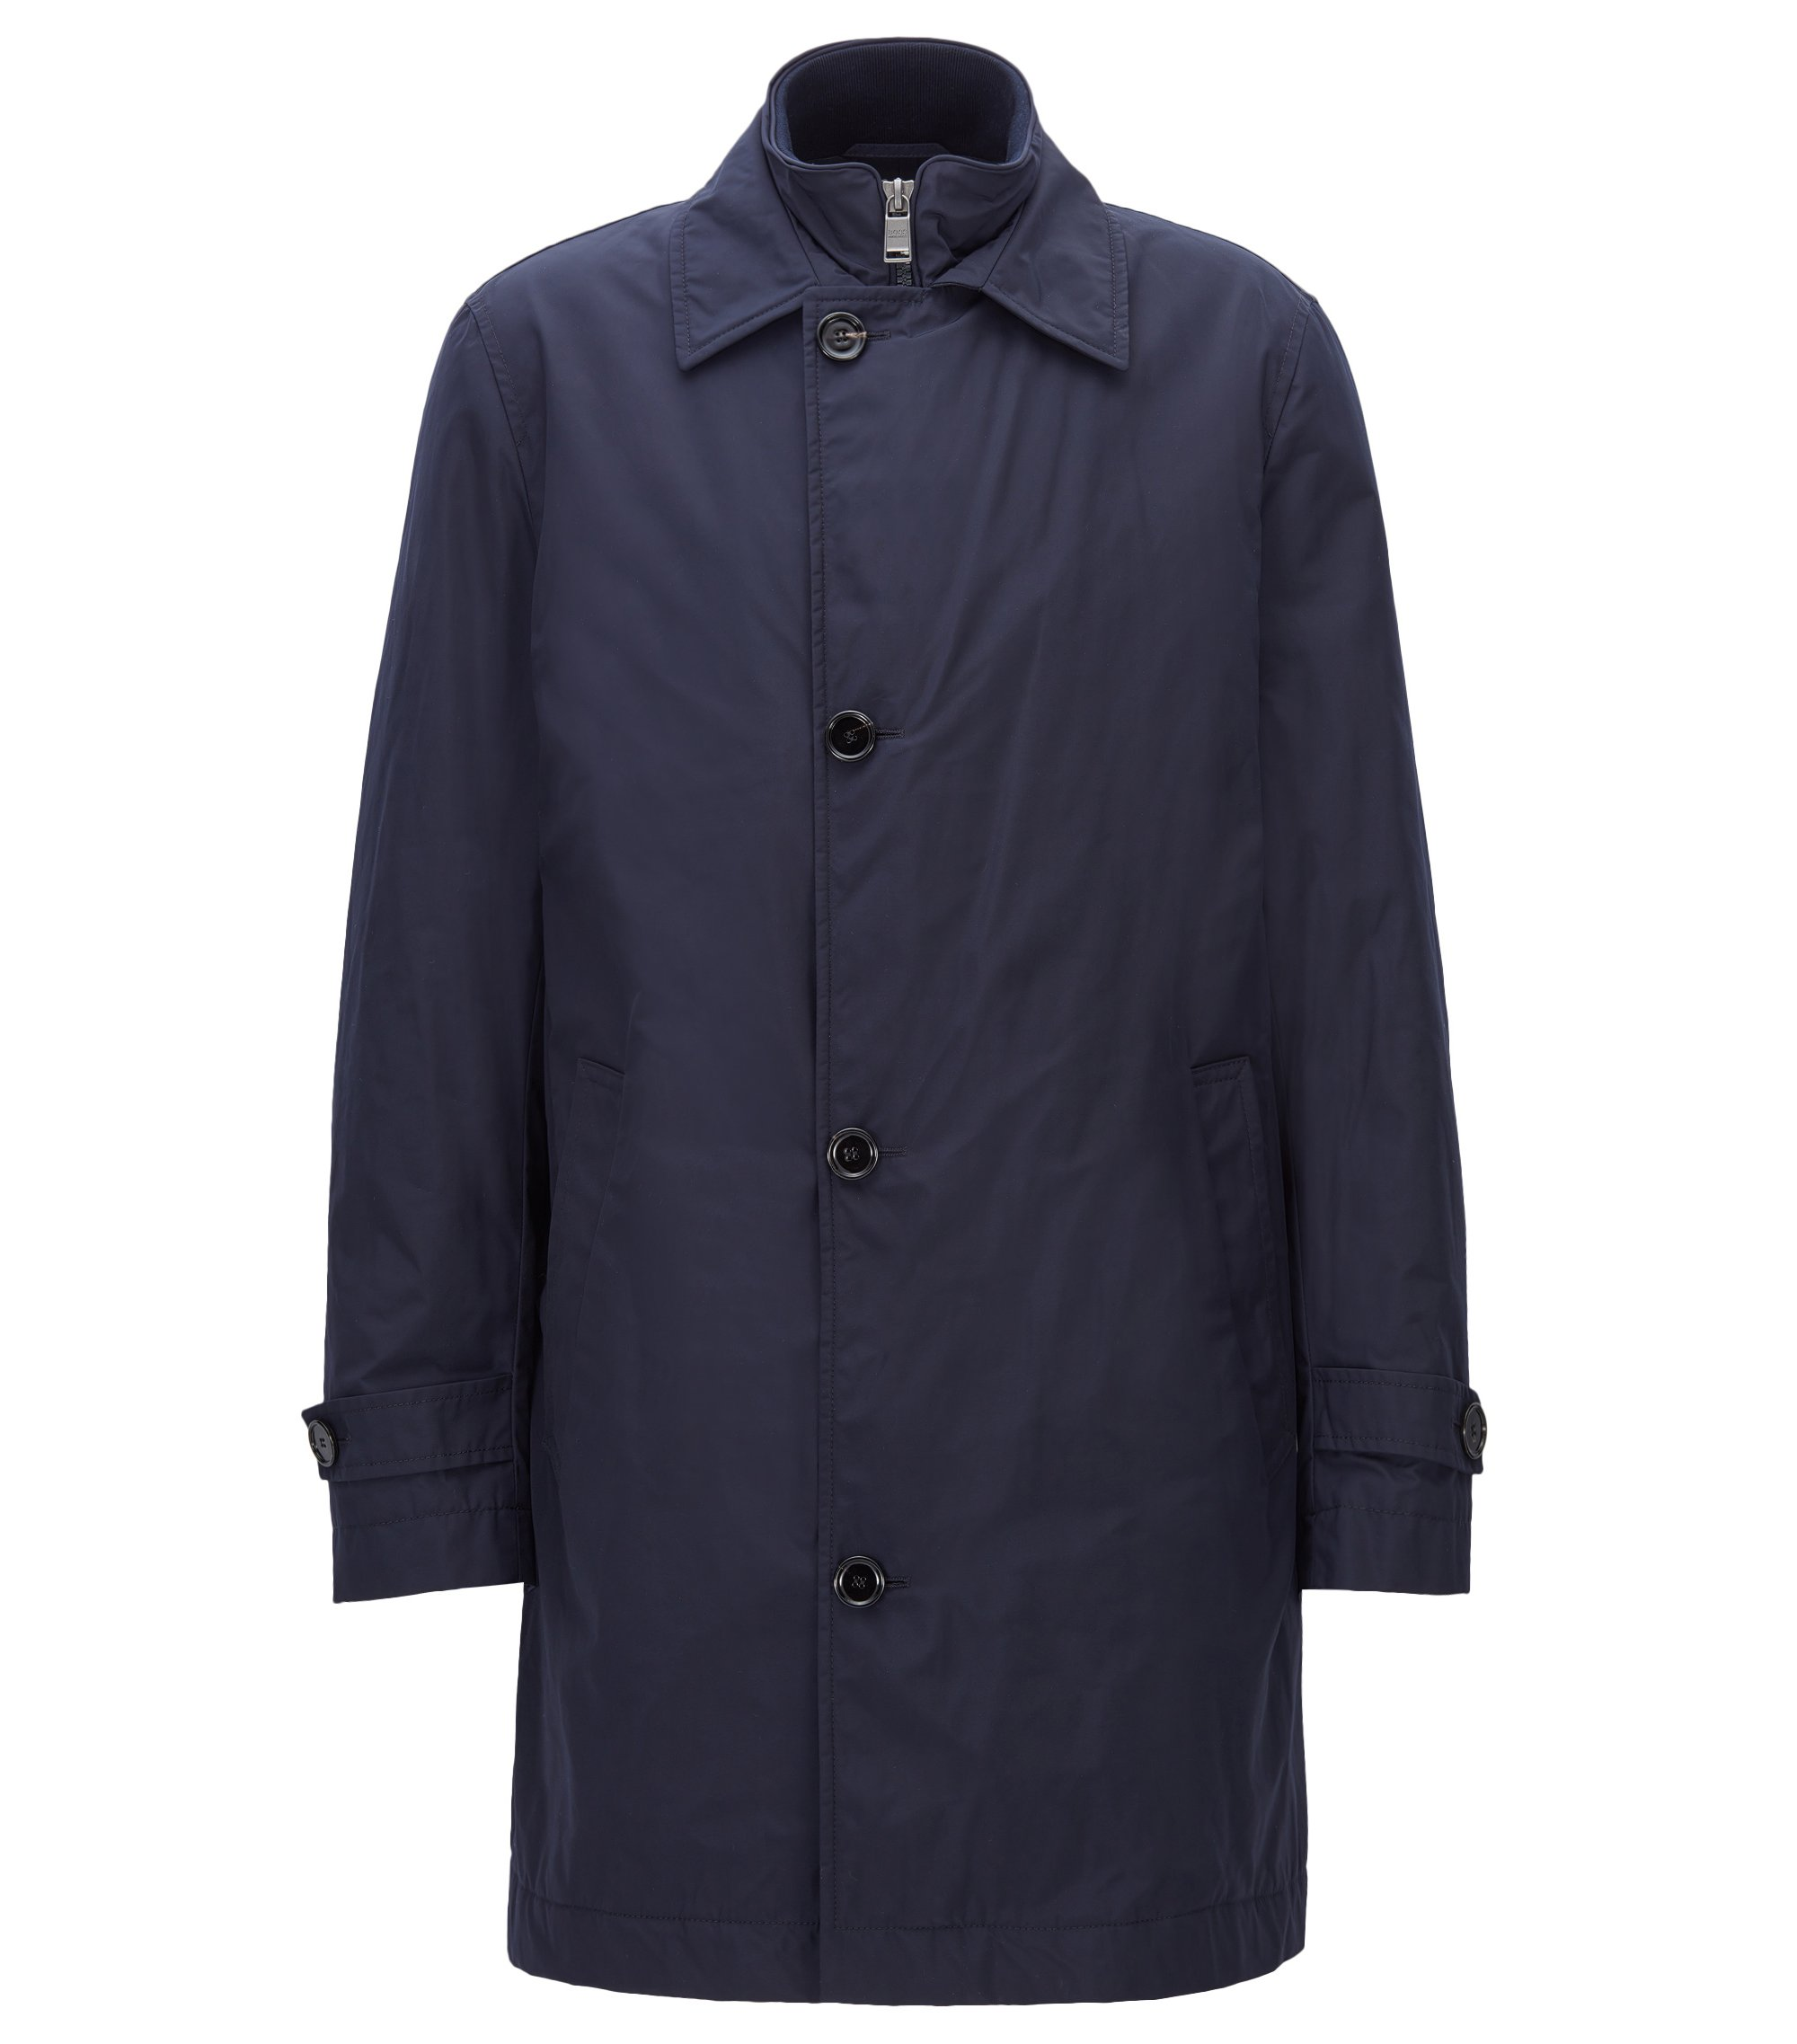 Cappotto slim fit in tessuto tecnico idrorepellente, Blu scuro